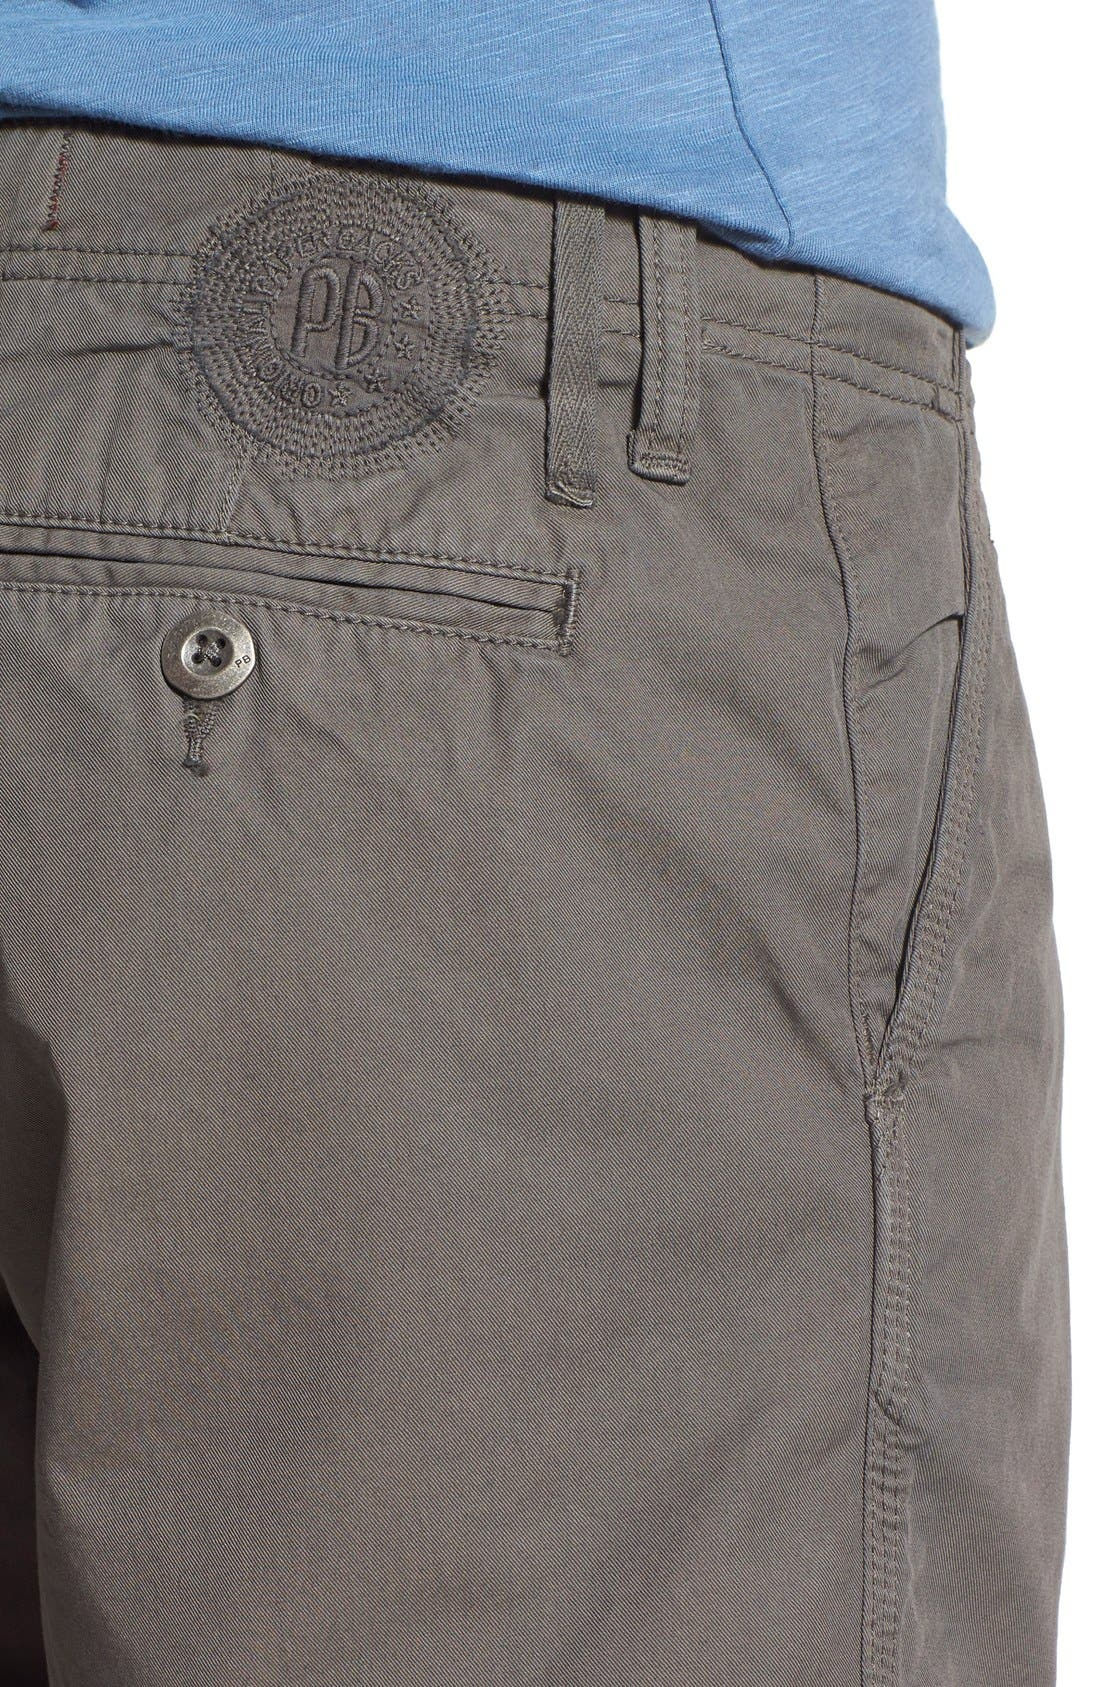 'Napa' Chino Shorts,                             Alternate thumbnail 47, color,